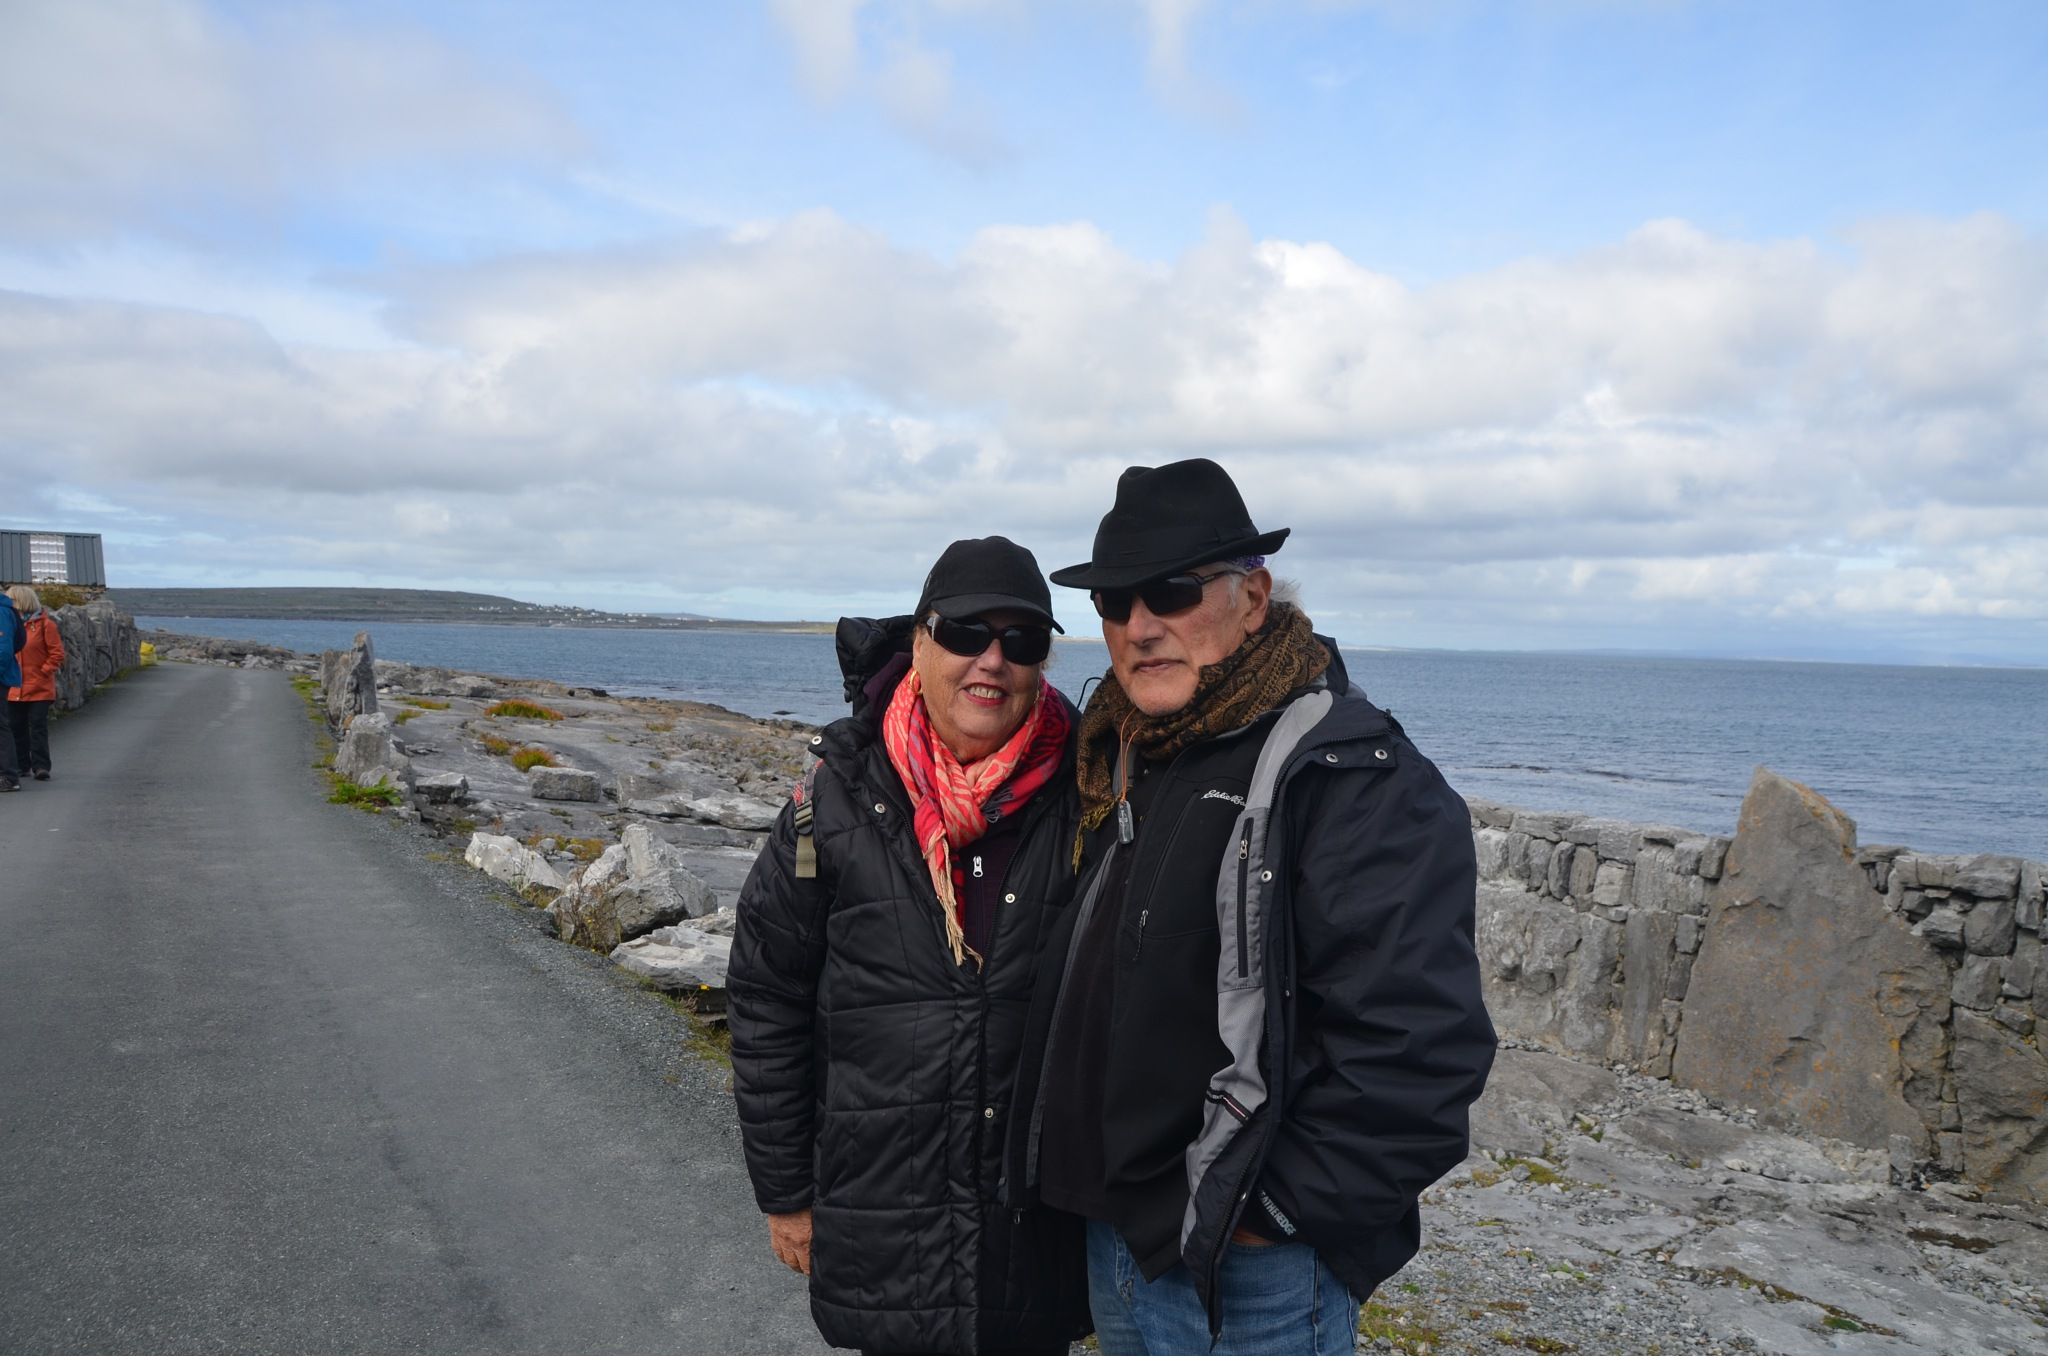 Paparazzi Monster  &  Deezel2 ~on Inisheer Island ~  off the Cliffs of Moher   ~ Sept. 21,  2017 by domenic.silvi